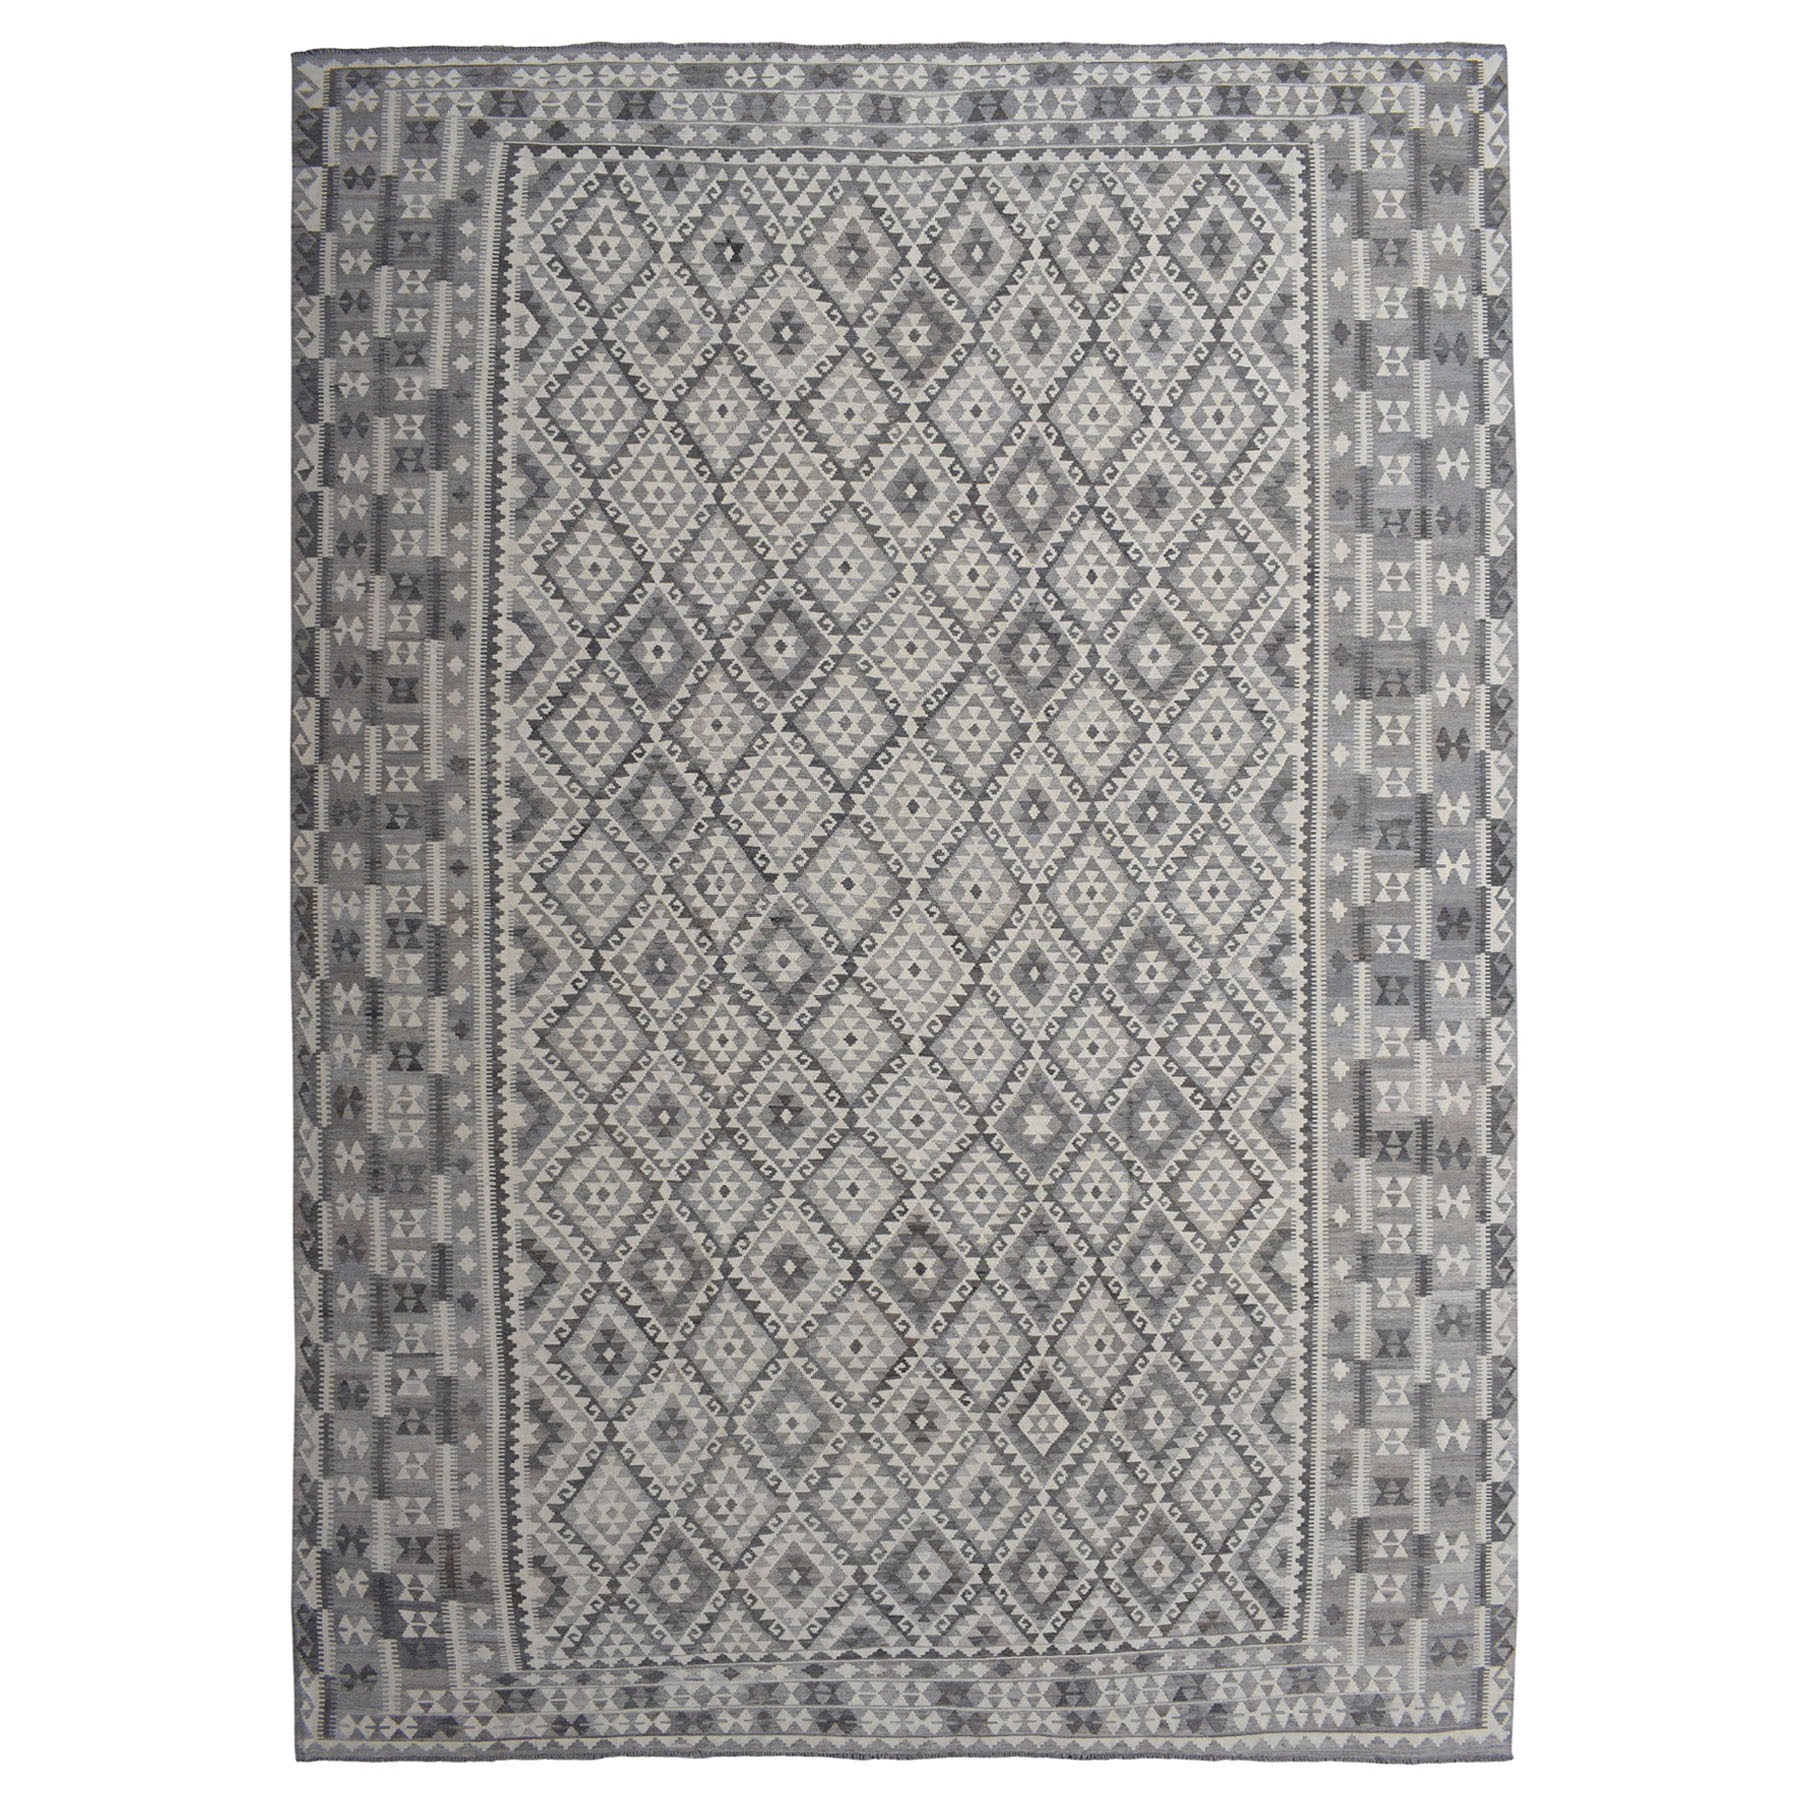 """11'7""""X16'4"""" Oversized Undyed Natural Wool Afghan Kilim Reversible Hand Woven Reversible Rug moaecdc8"""